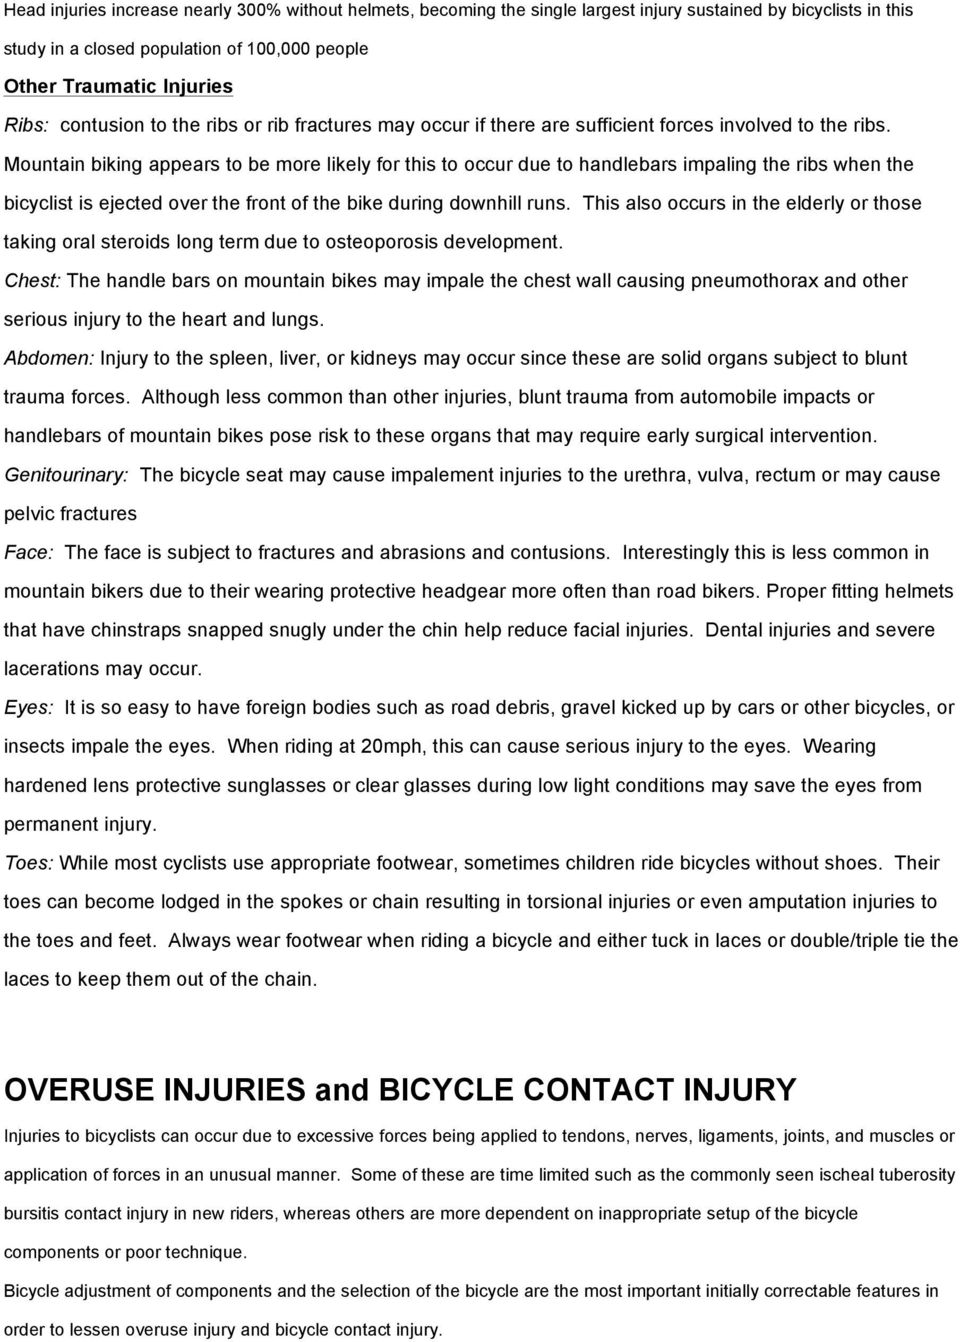 Mountain biking appears to be more likely for this to occur due to handlebars impaling the ribs when the bicyclist is ejected over the front of the bike during downhill runs.